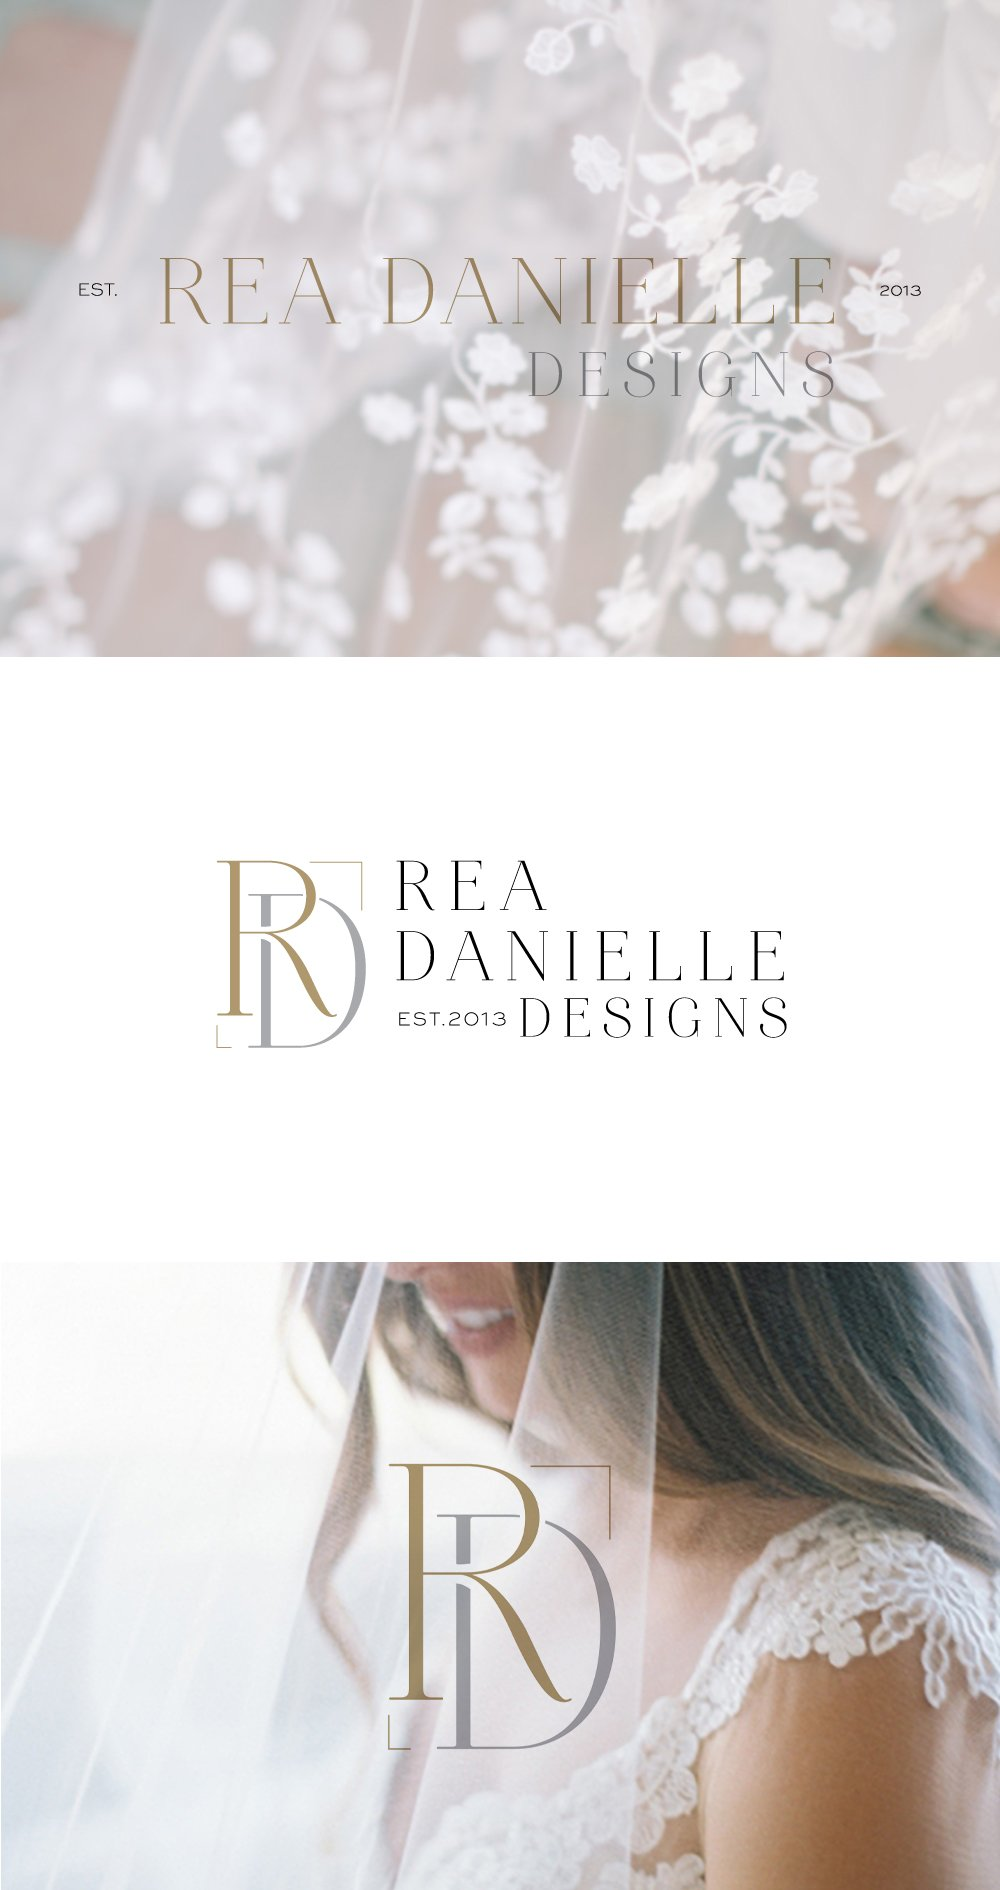 Logo design for Rea Danielle Designs, showing the complete set with variations | luxurious, elegant, timeless logo design for a wedding planner